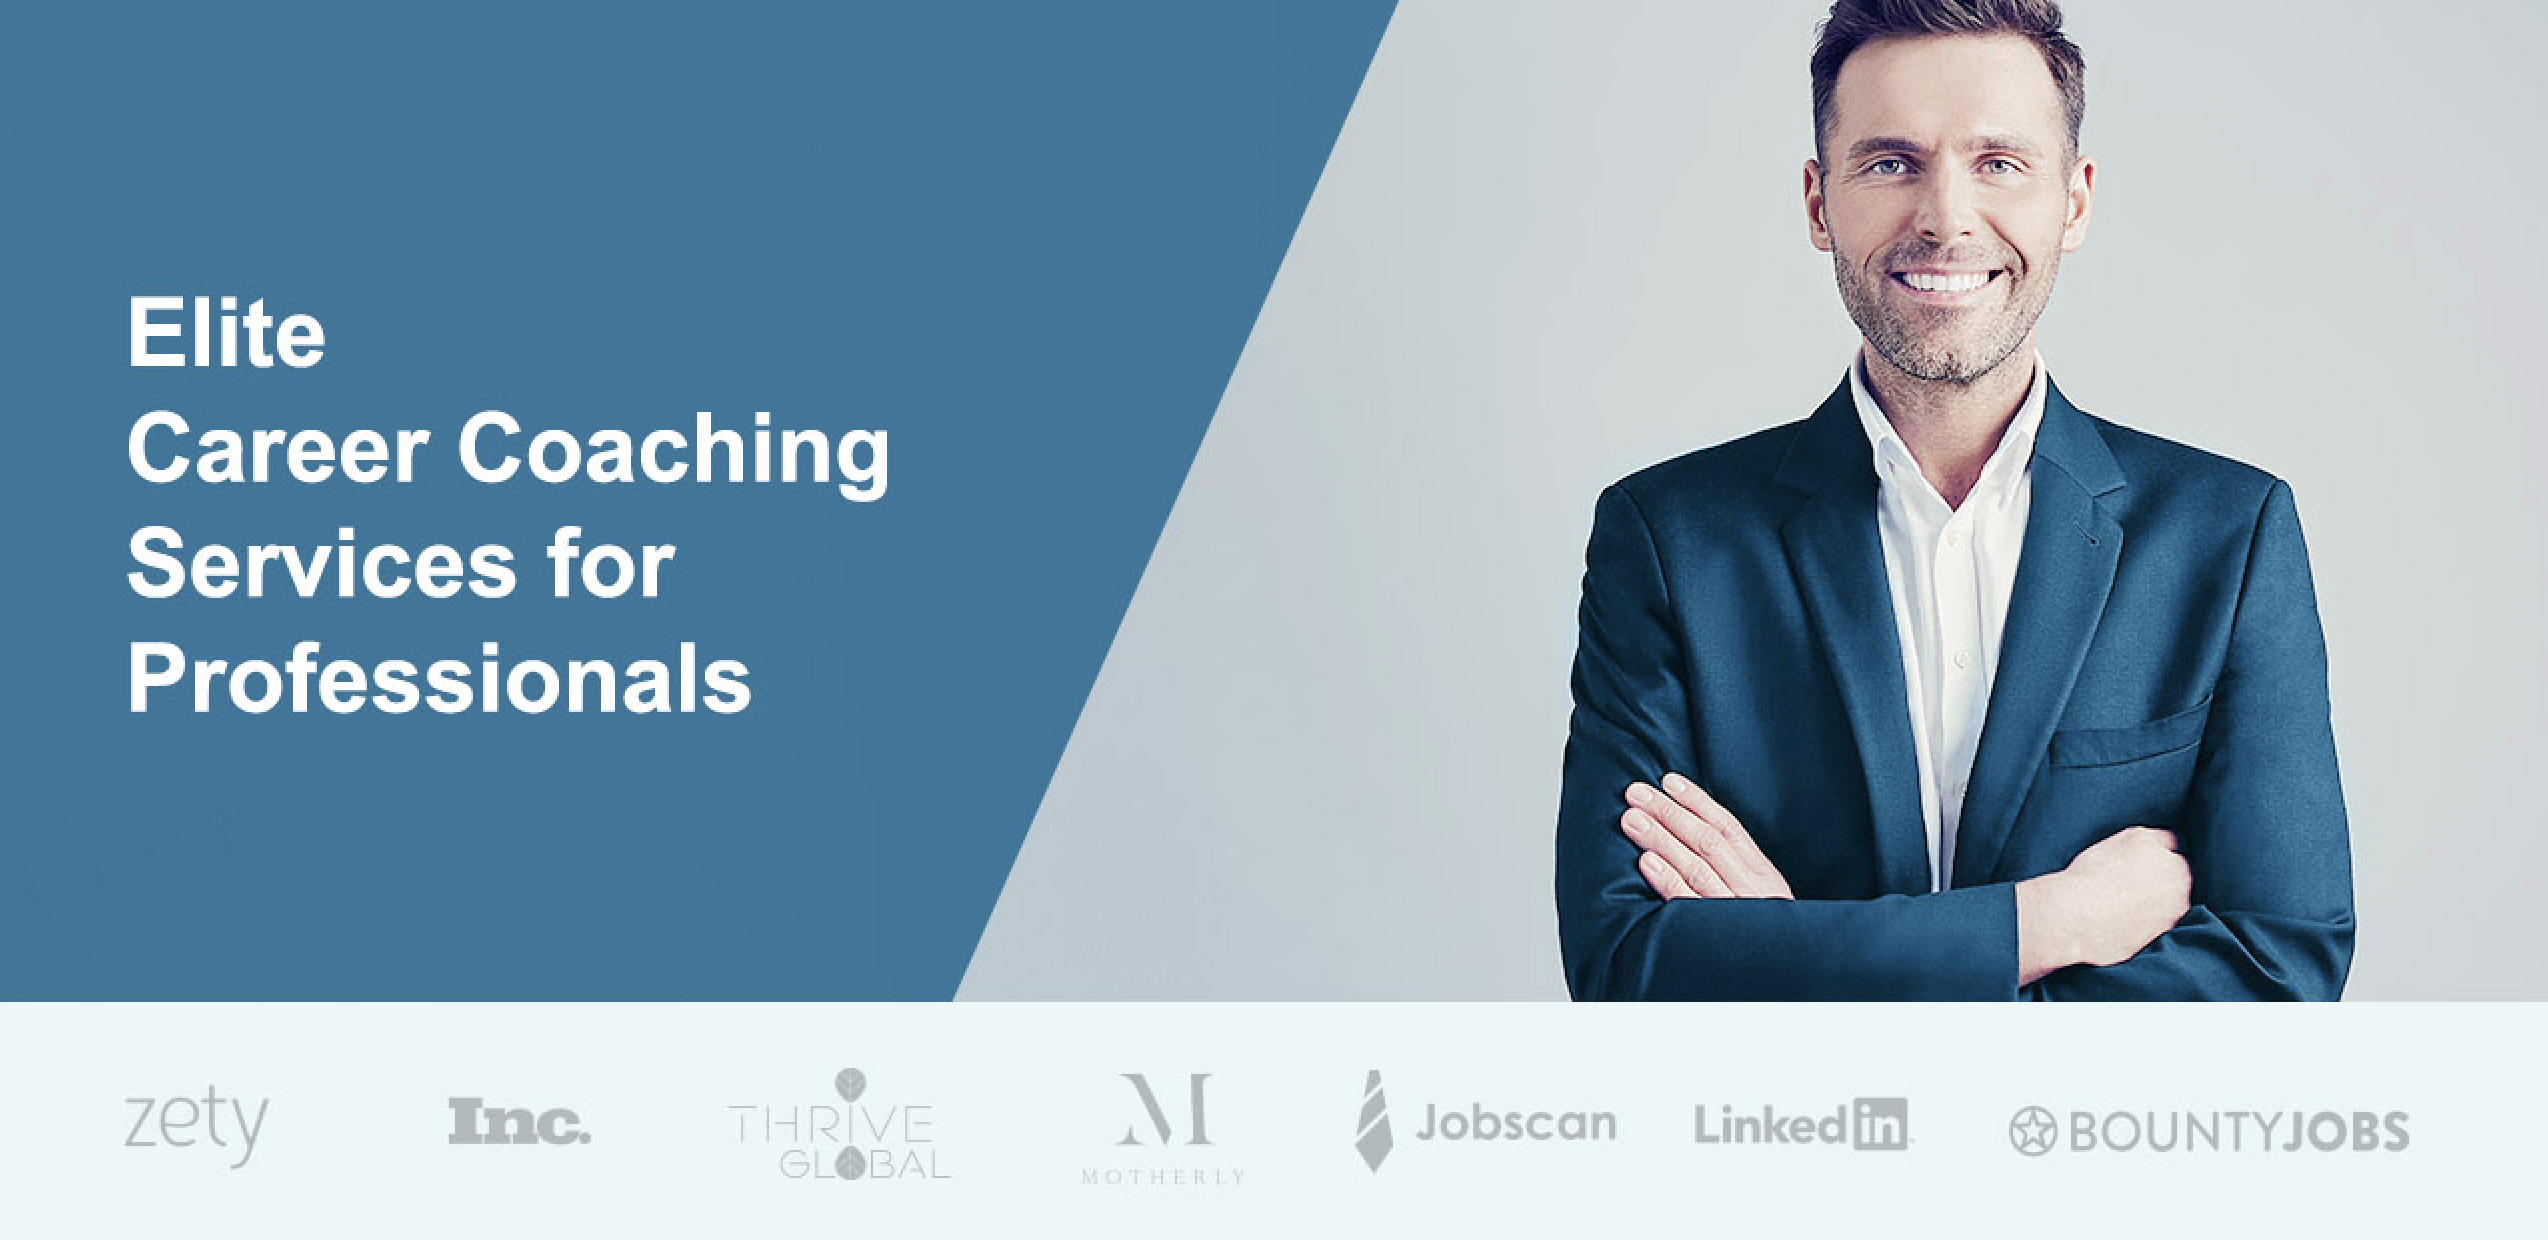 Elite Career Coaching Services for Professionals